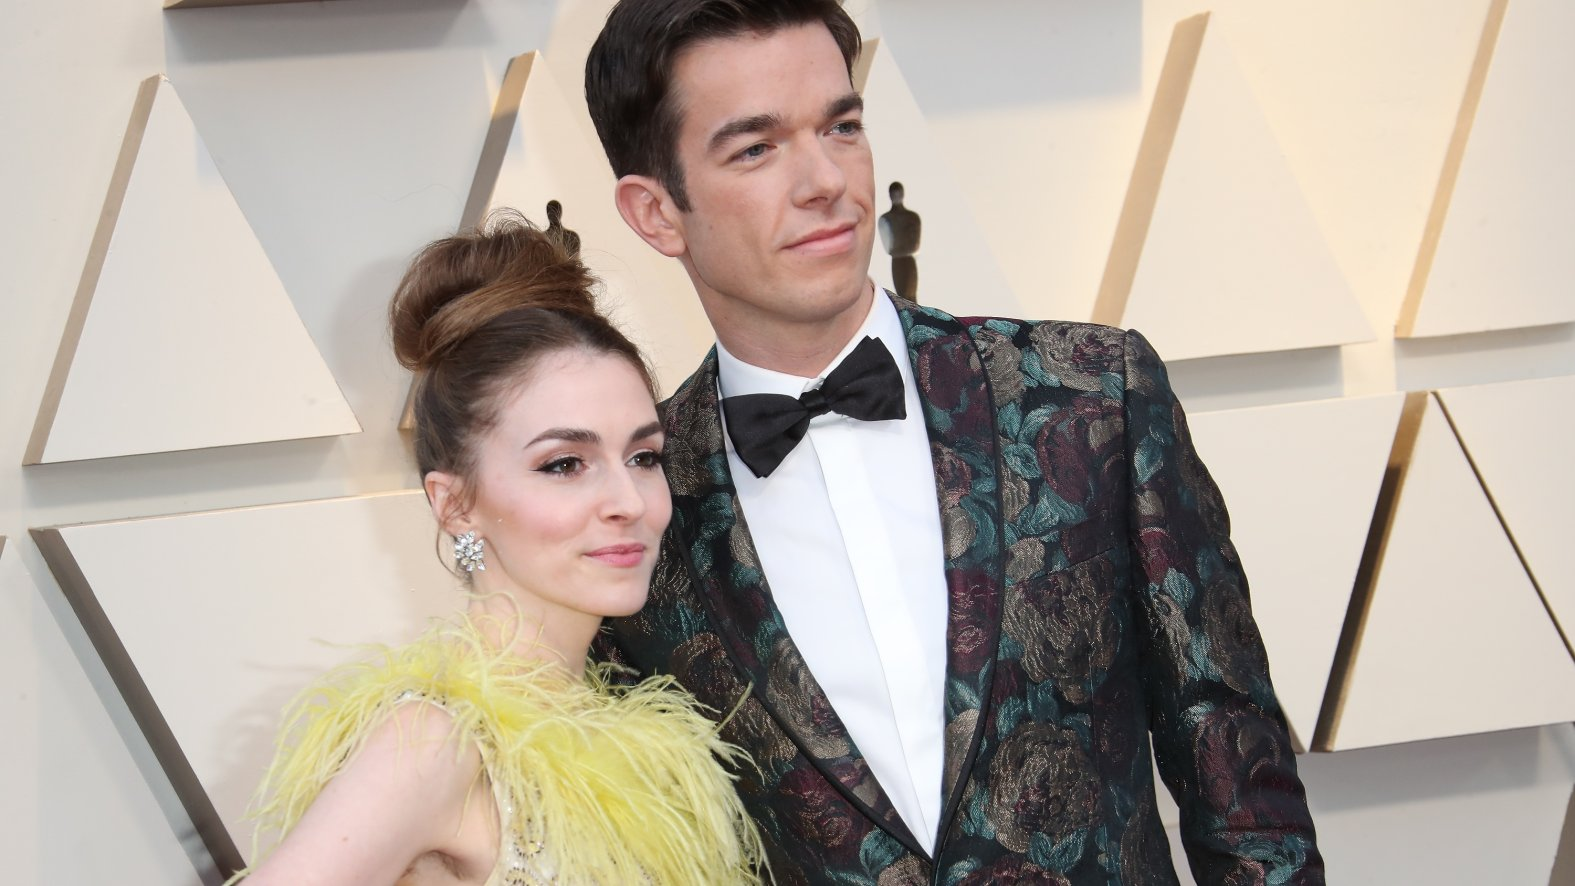 John Mulaney and Wife Anna Marie Tendler Break Up After 6